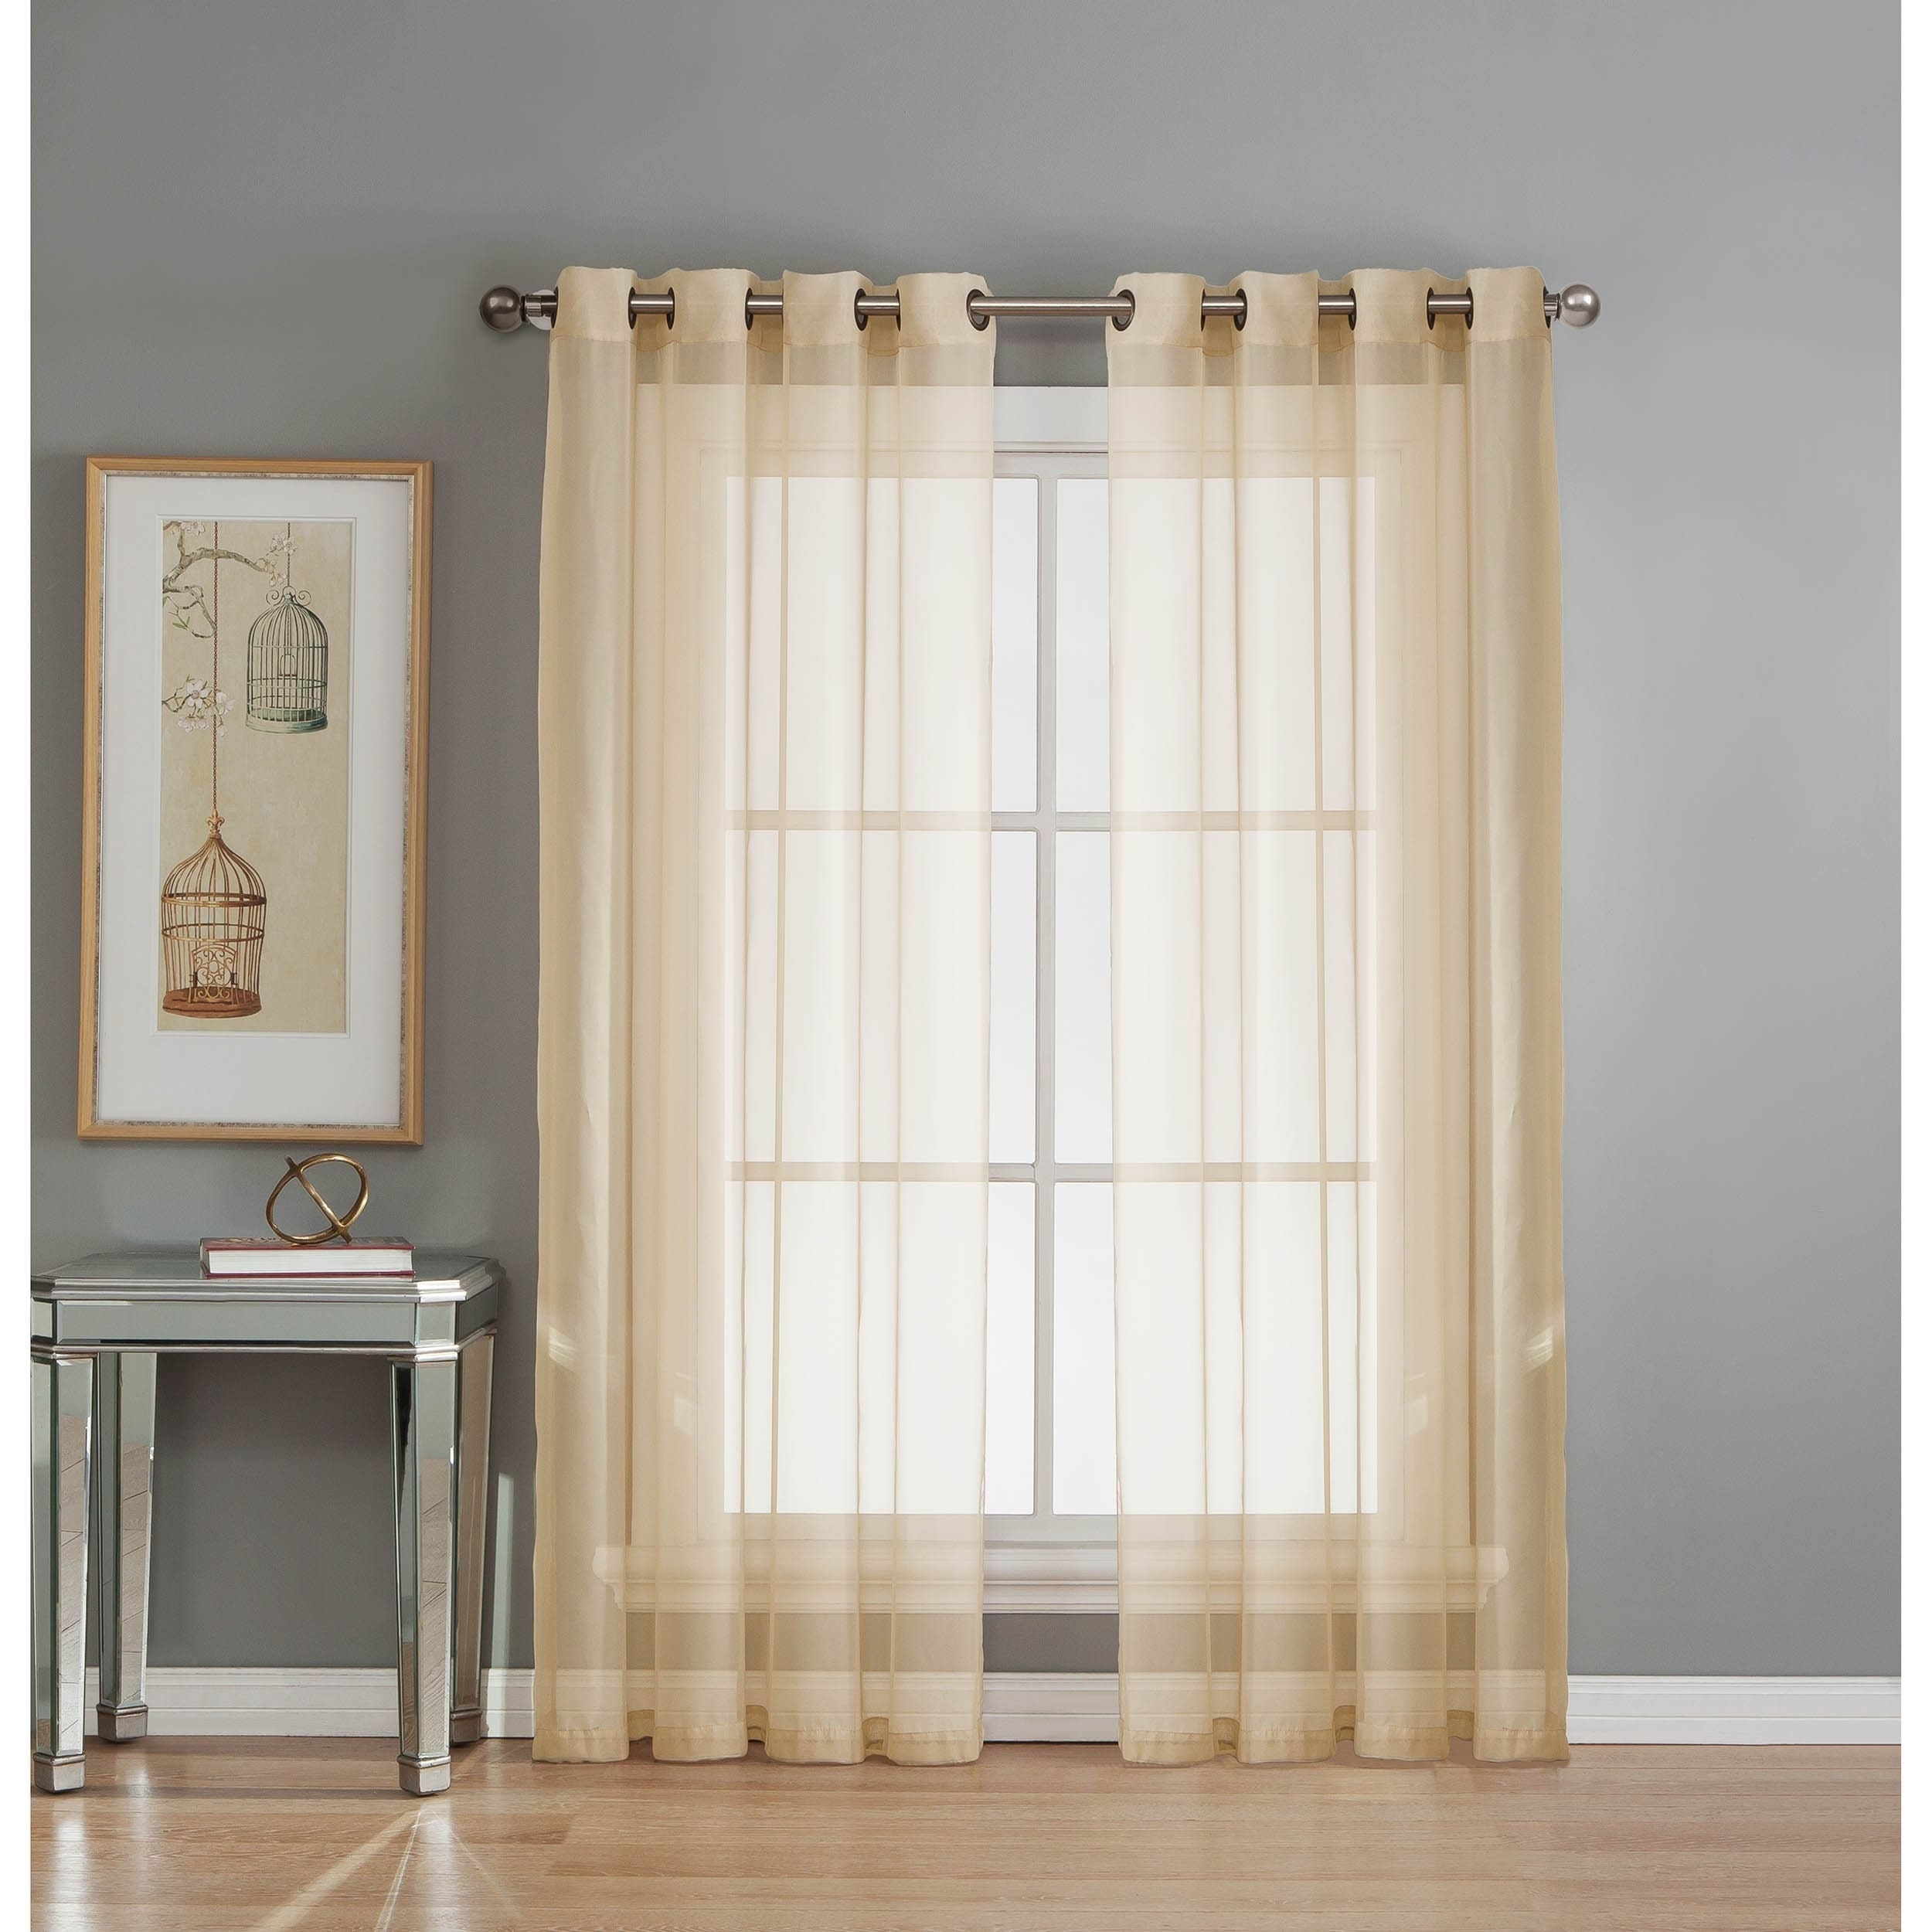 colors in walmart mainstays curtain and curtains ip panel room com sheer multiple sizes voile diamond darkening